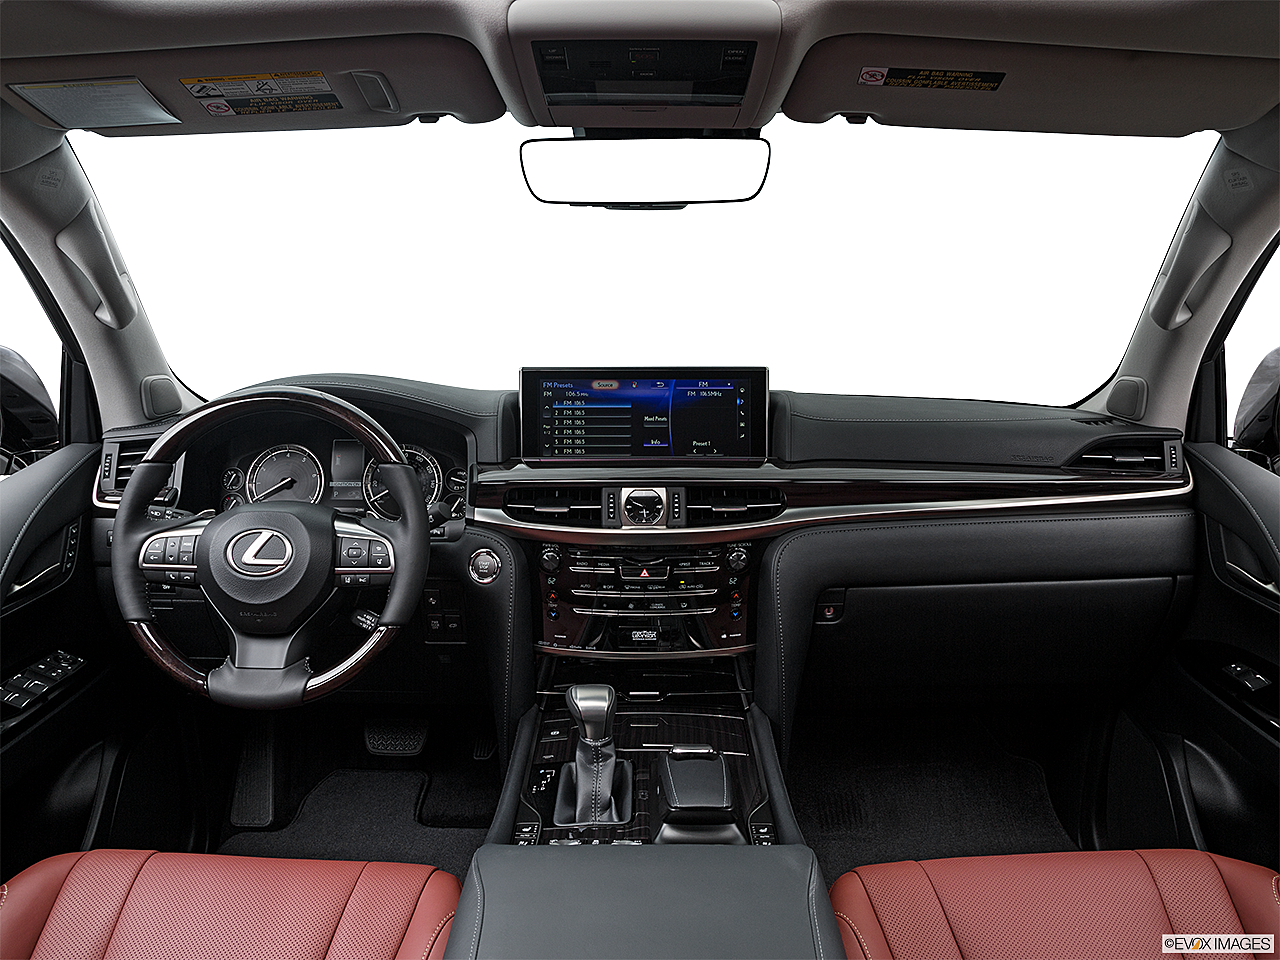 Attractive 2016 Lexus LX LX570, Centered Wide Dash Shot